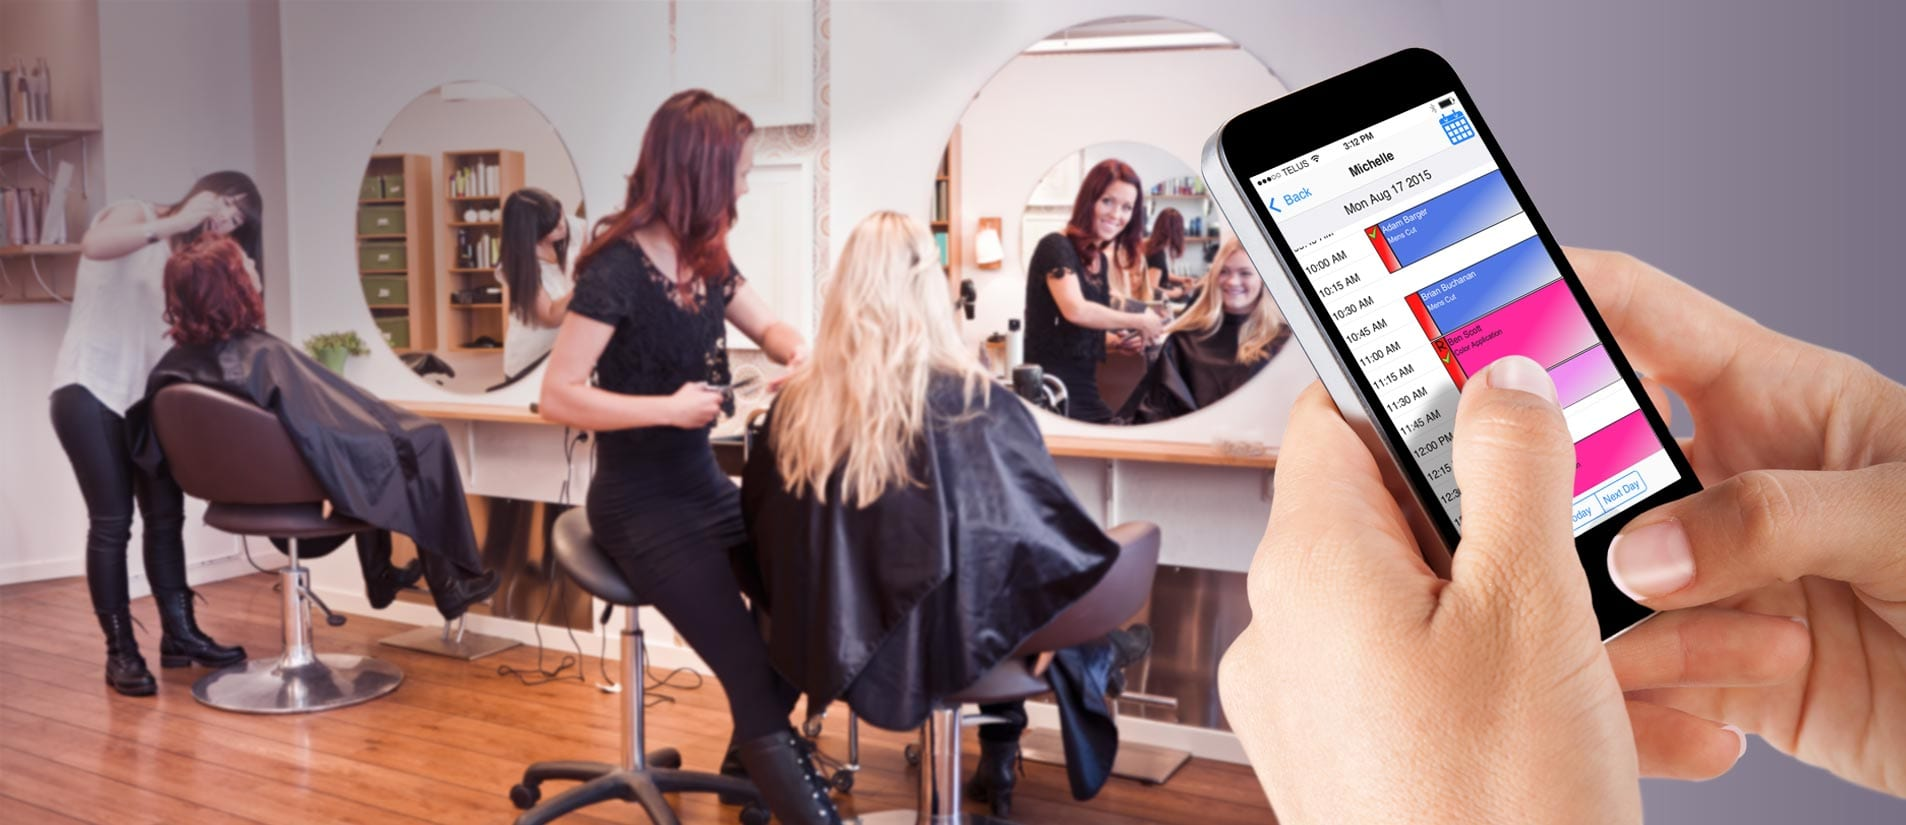 hair salon appointment app mobile device online booking